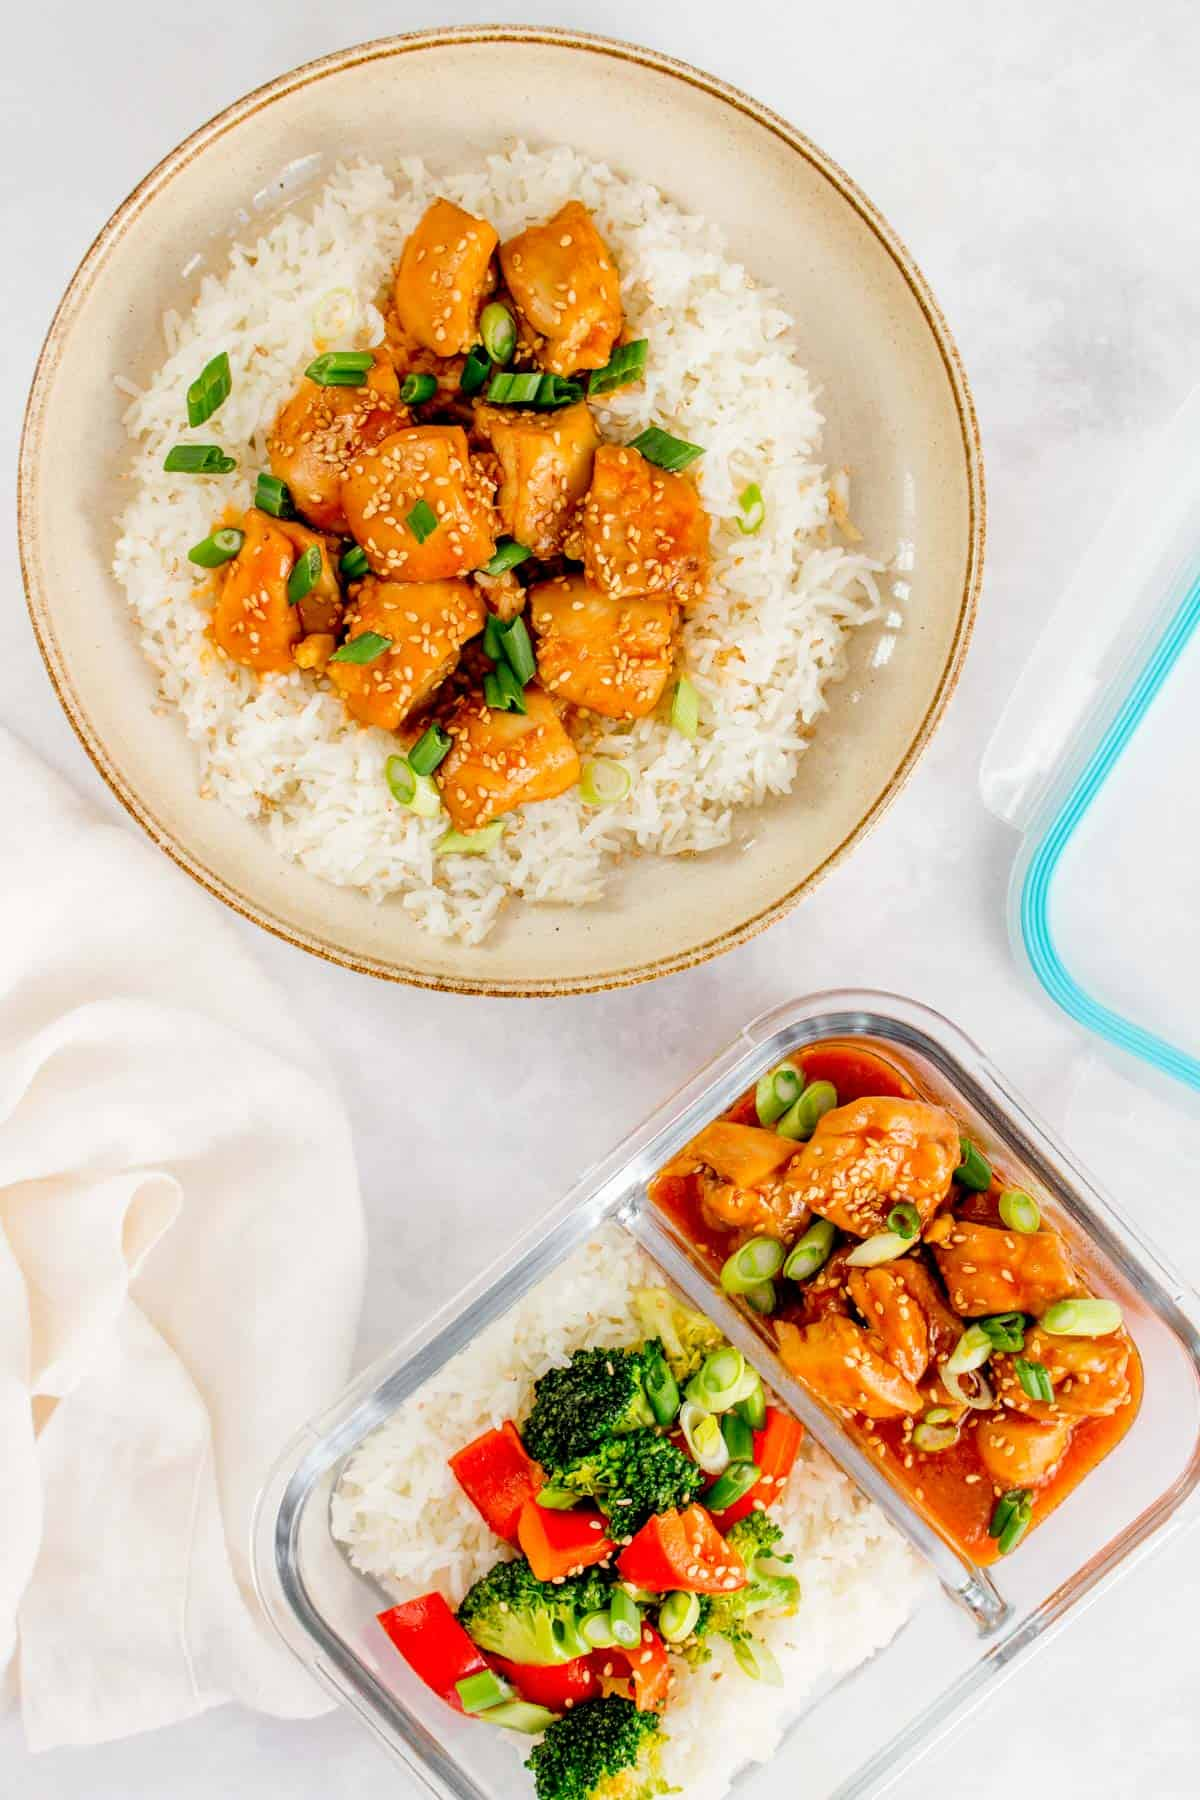 Instant pot sesame chicken in a plate and in a meal prep container.